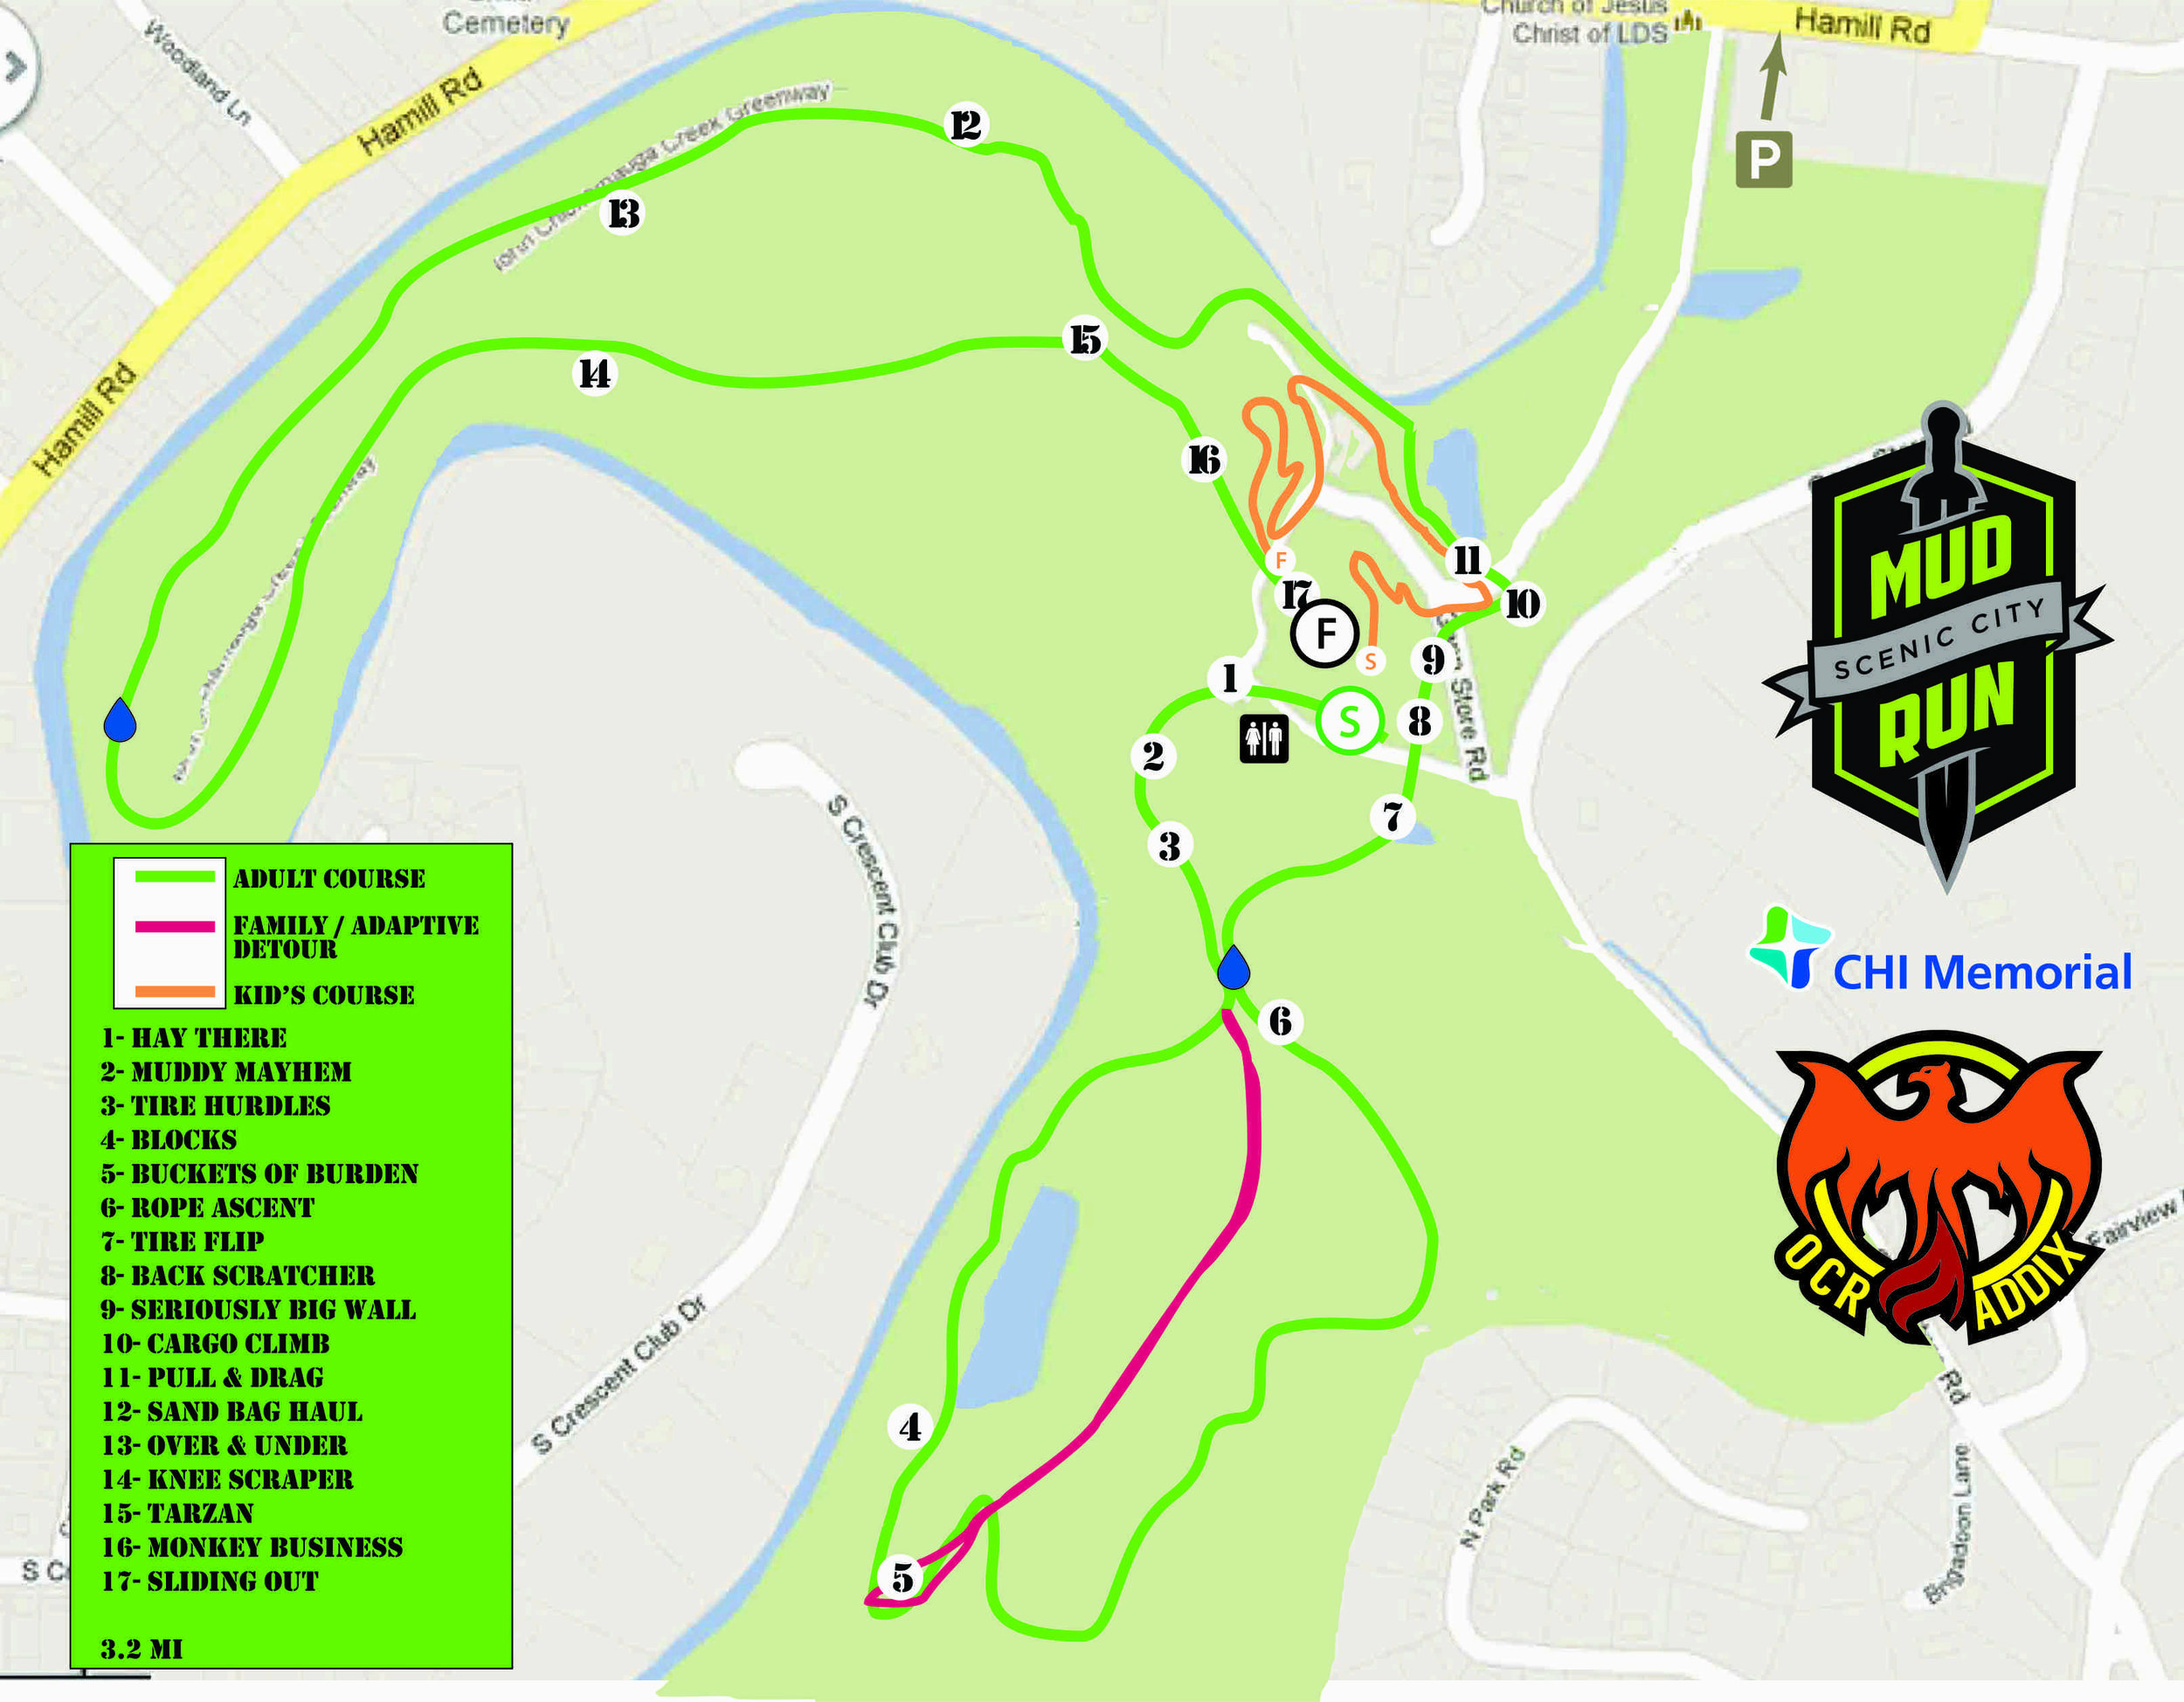 2019 Scenic City Mud Run Map.jpg